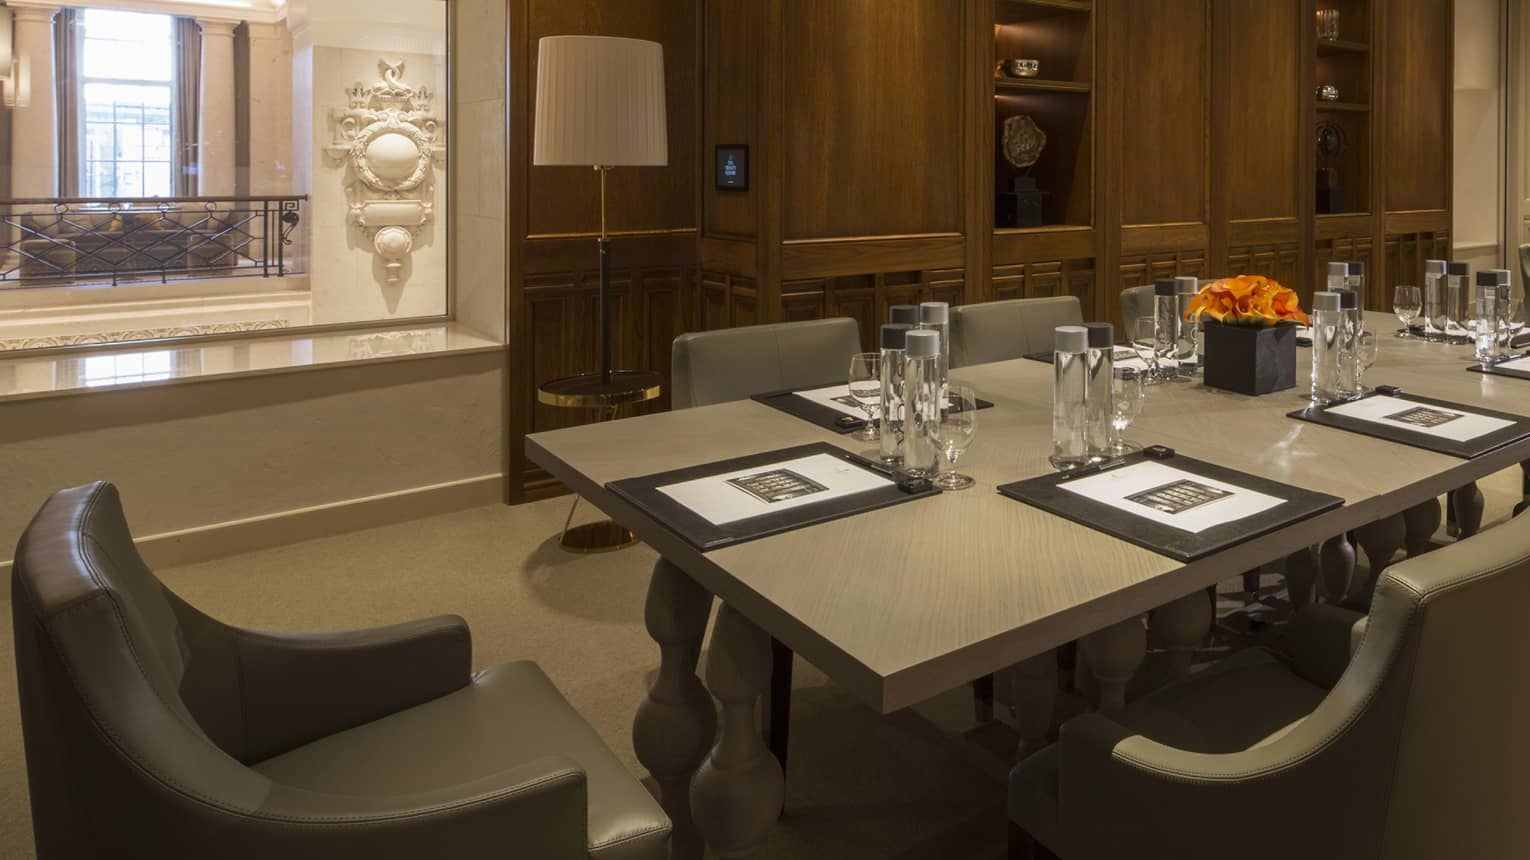 Serica Meeting Room two long boardroom tables with modern chairs, window to hall